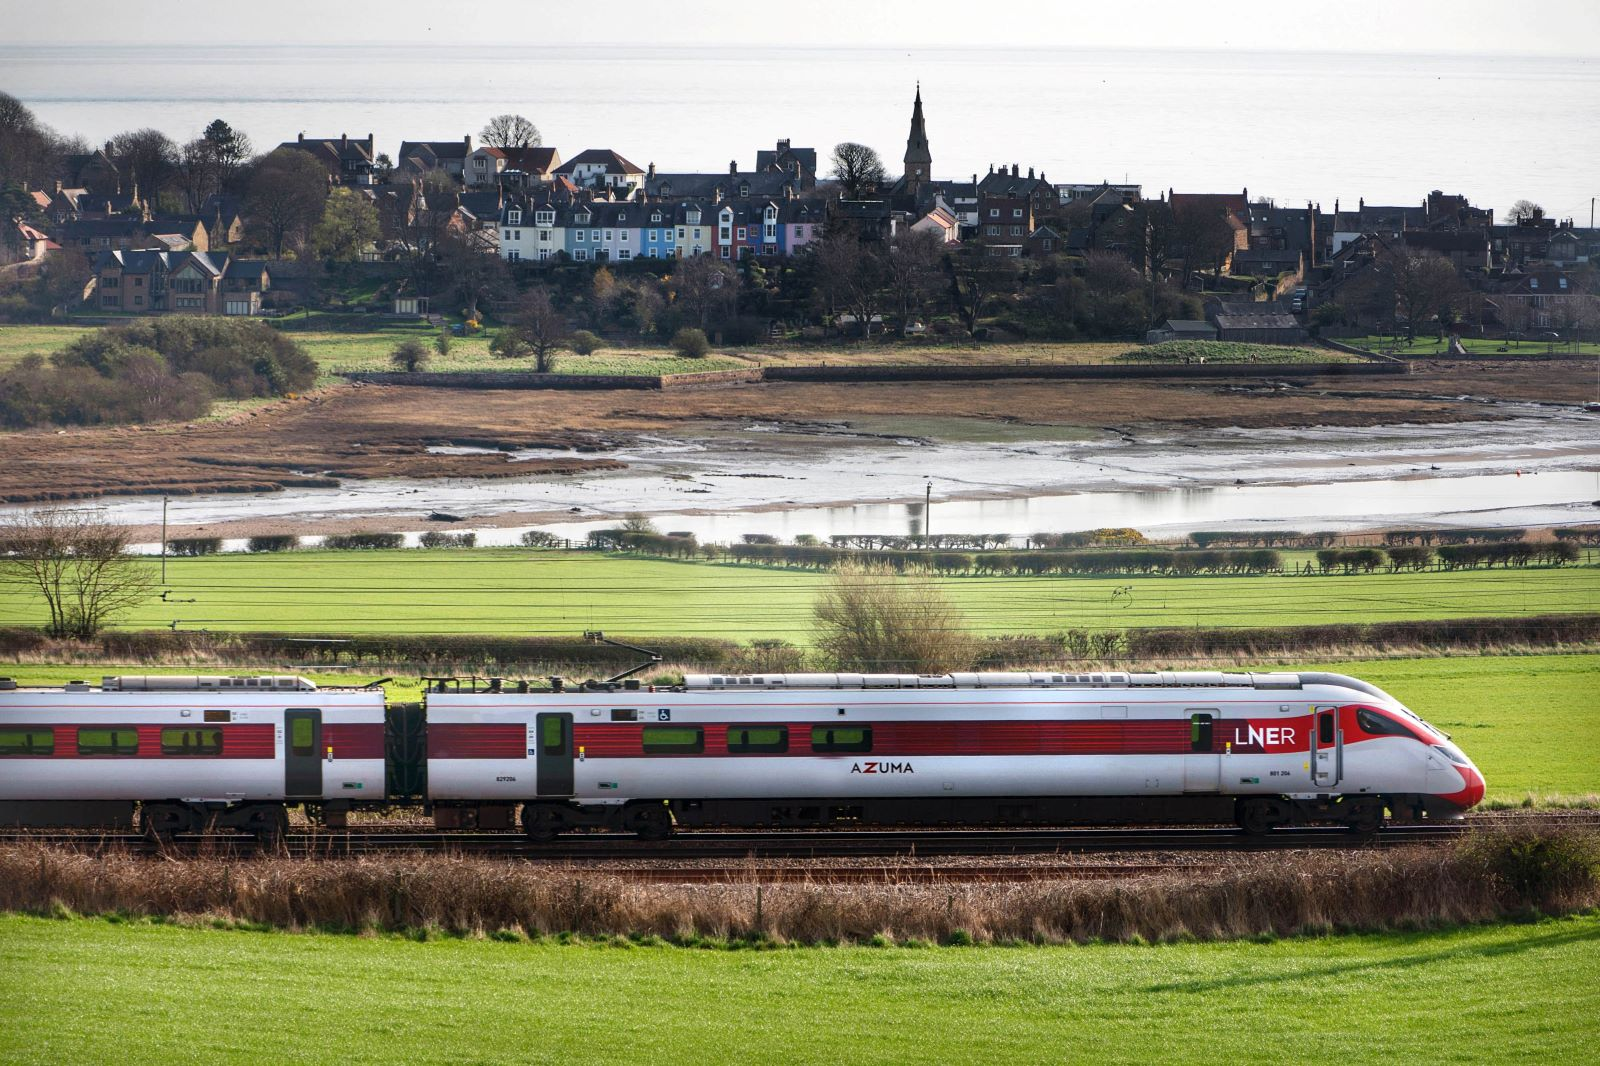 LNER Offers Advance Tickets For First Time On Almost 200 New Journey Combinations